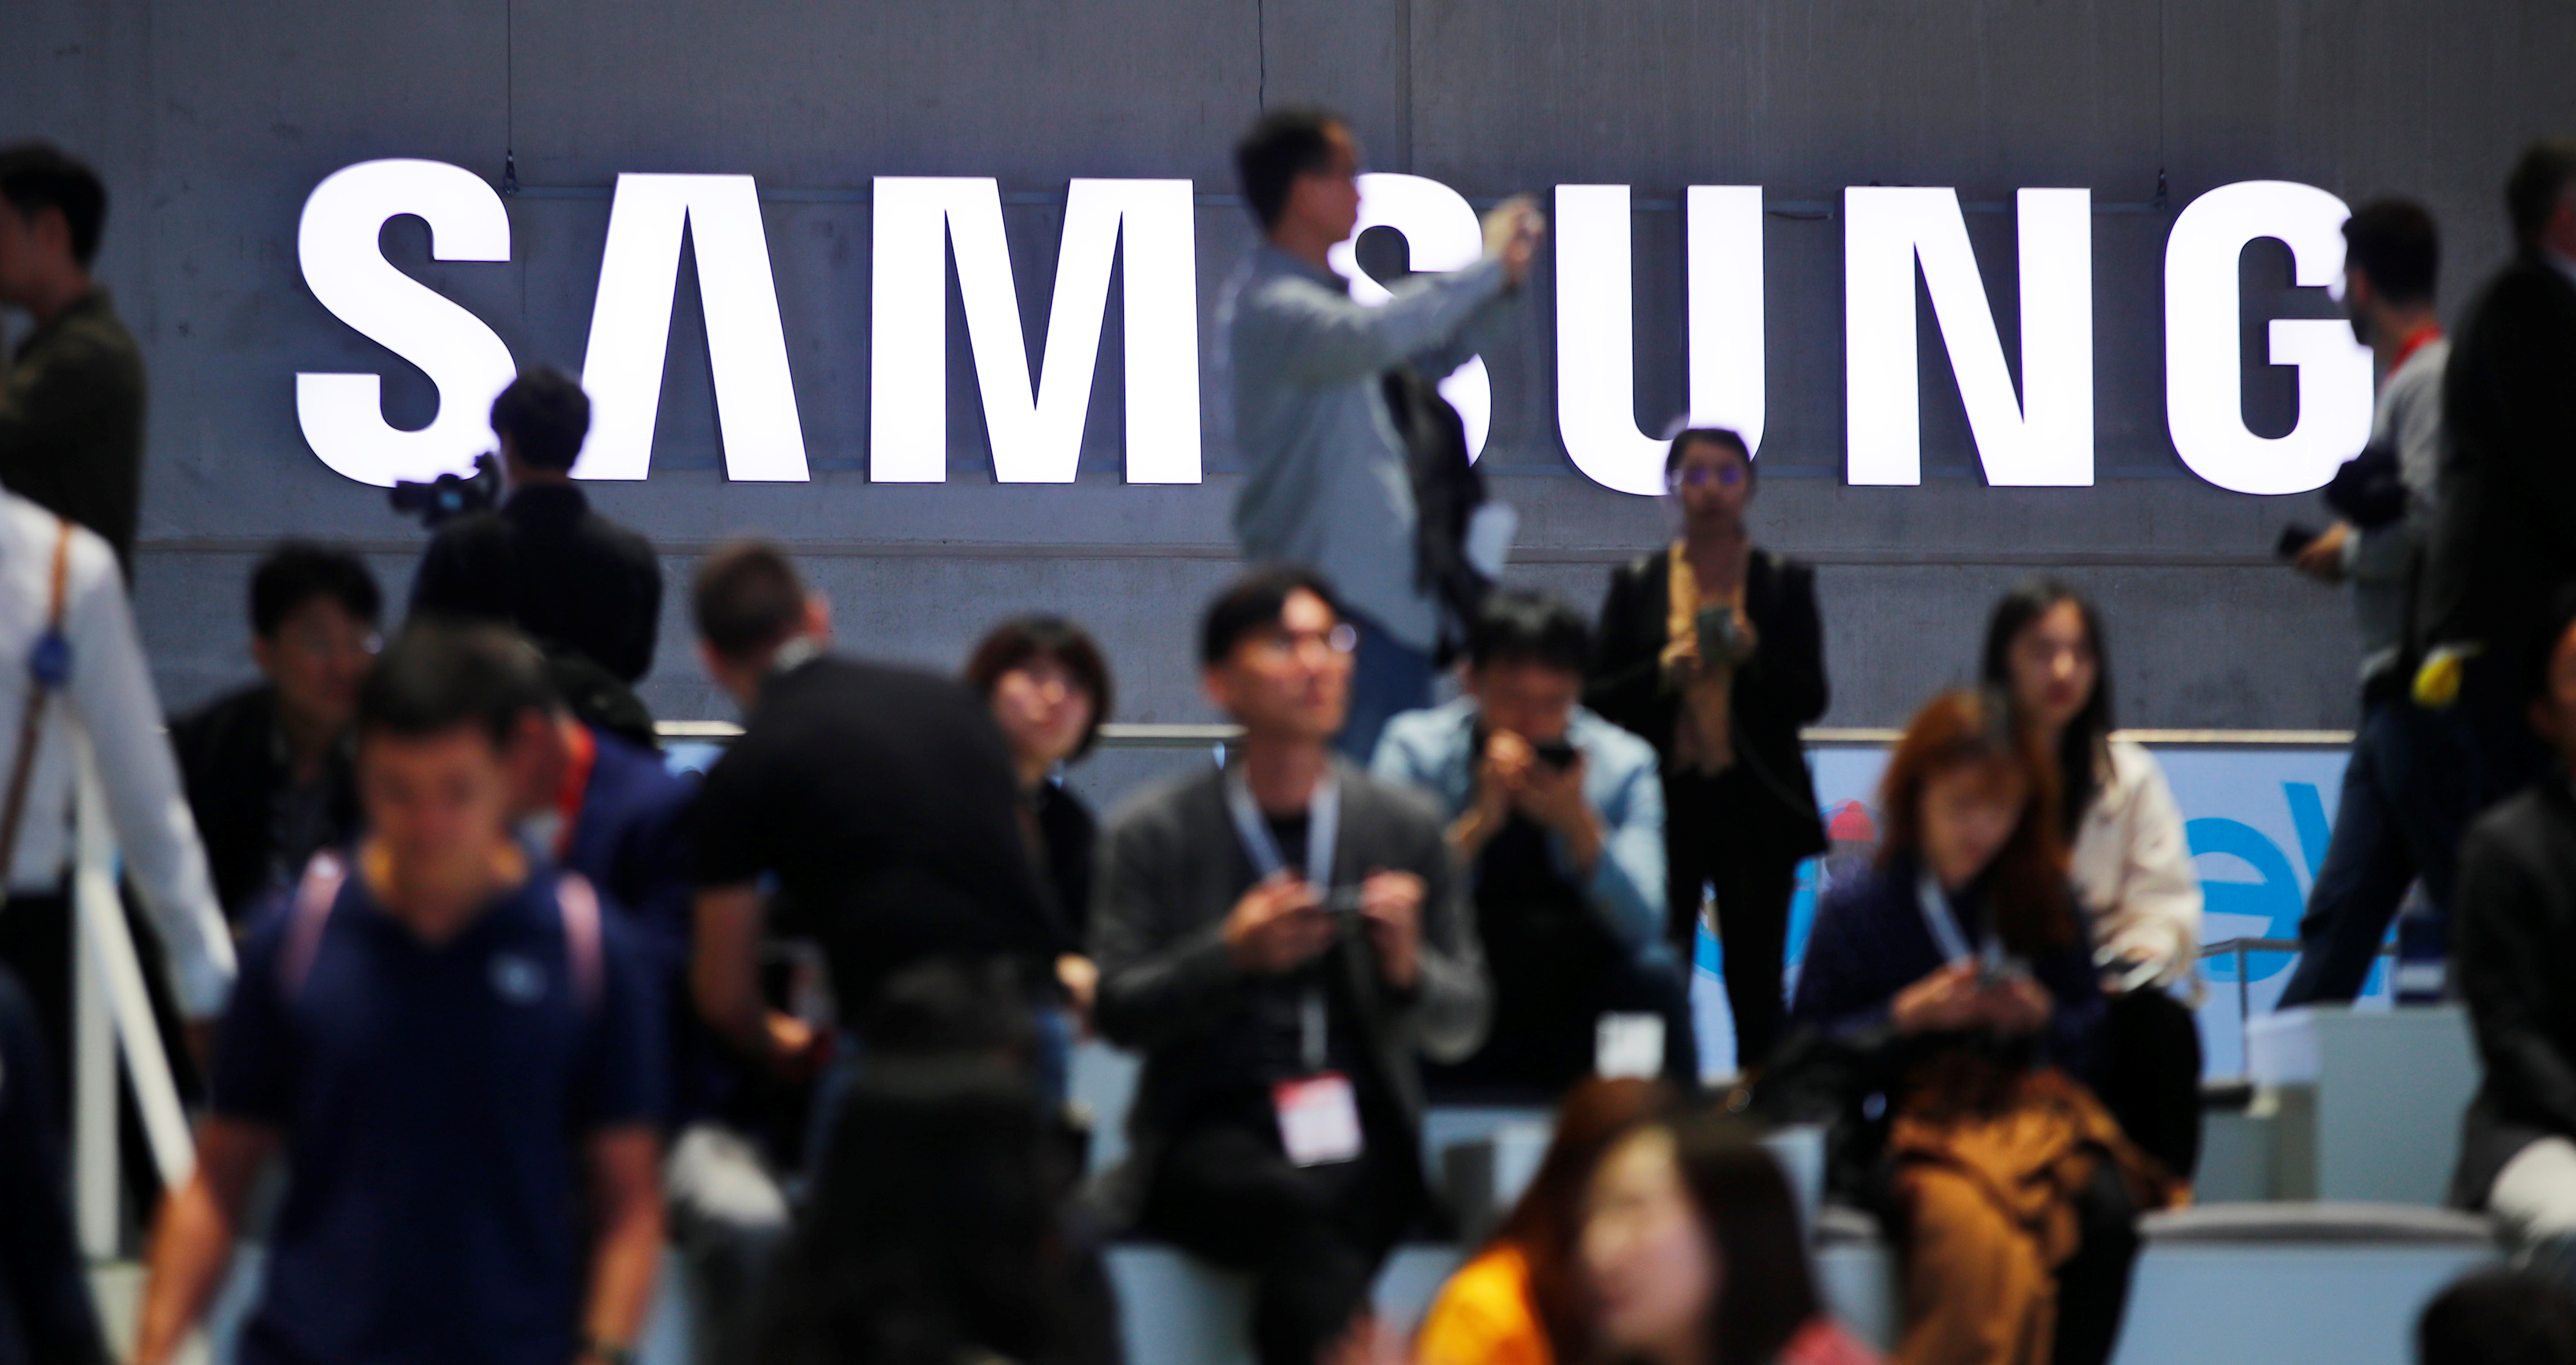 People sit in front of a Samsung logo at the IFA consumer tech fair in Berlin, Germany, September 6, 2019. REUTERS/Hannibal Hanschke